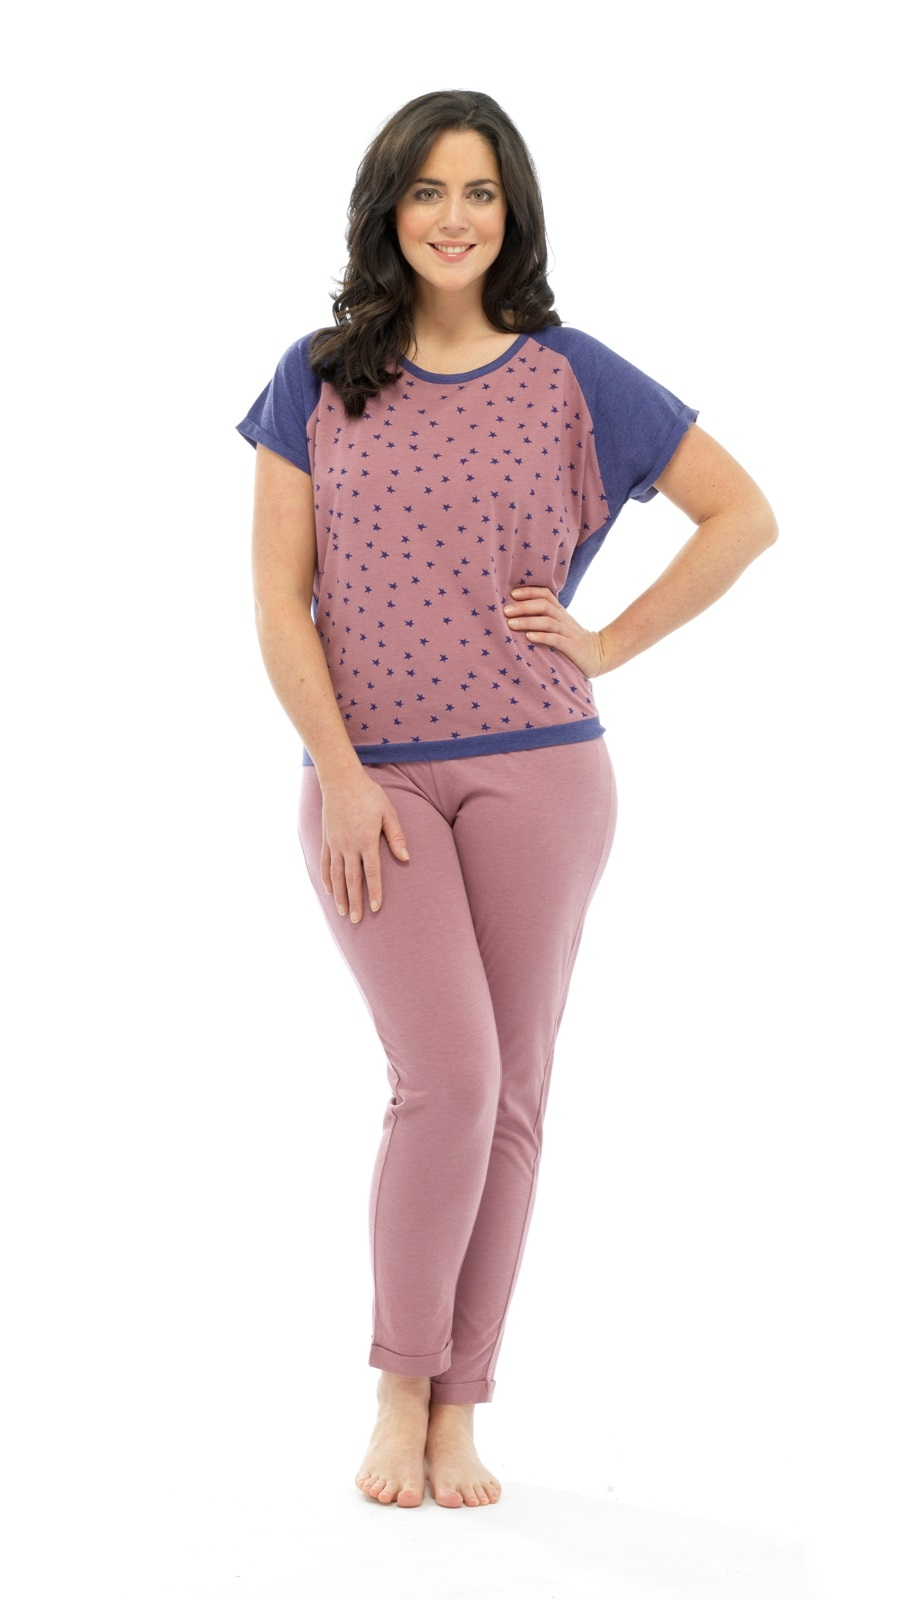 Flattering & Beautiful Women's Nightwear | J D WilliamsStyles: Lorraine Kelly, Skechers, Joanna Hope, Cushion Walk, Magisculpt.